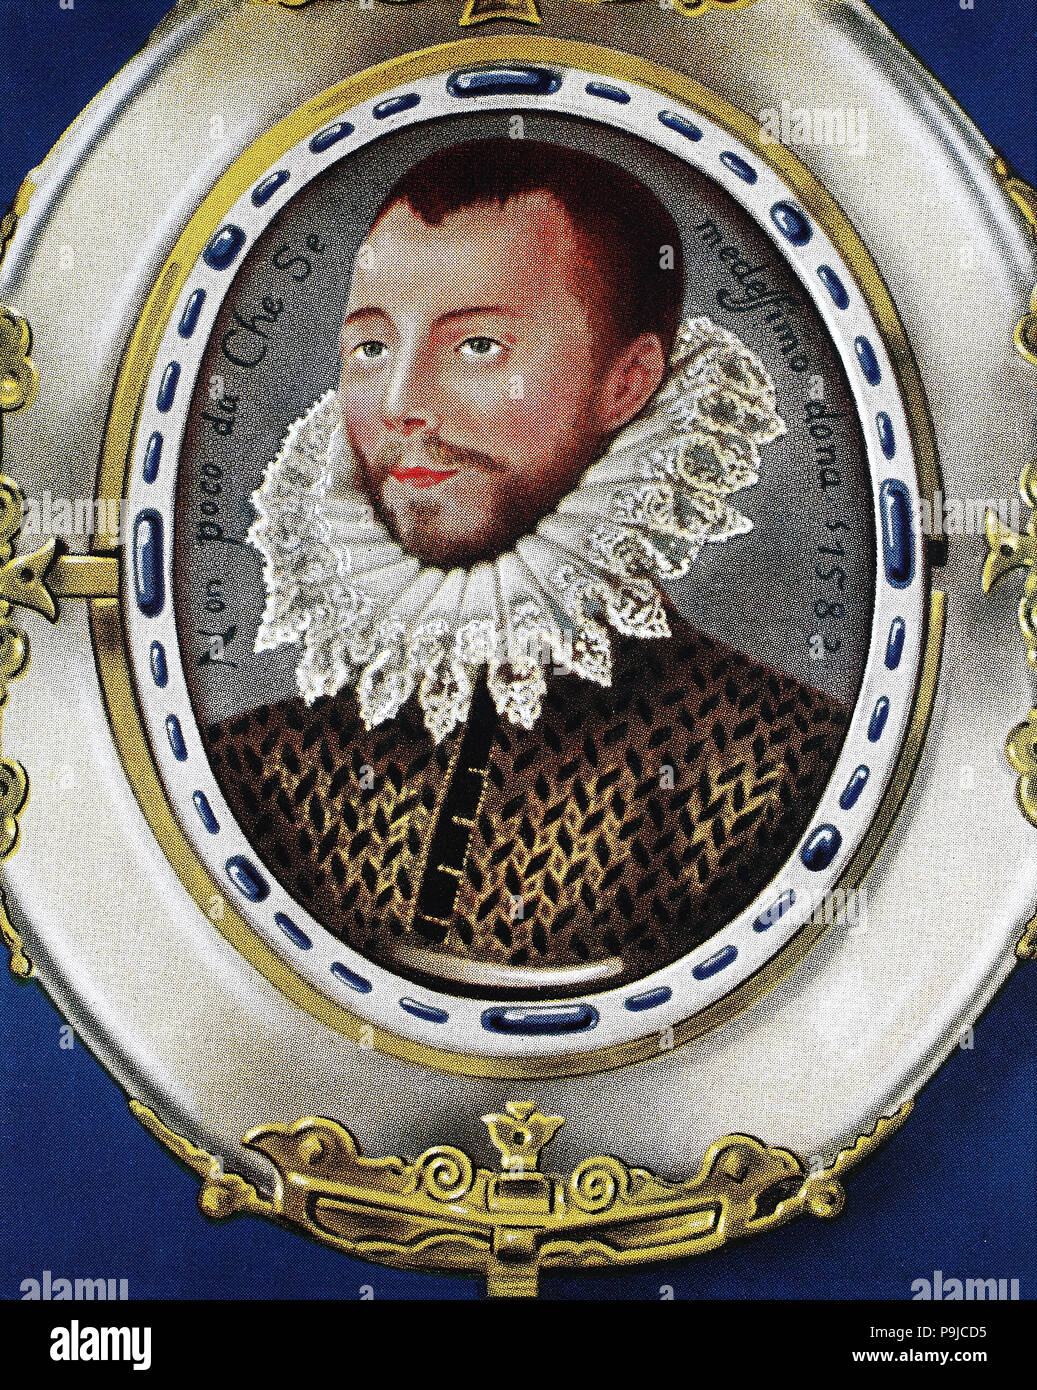 Philip II, Felipe II, 21 May 1527 – 13 September 1598, called the Prudent, el Prudente, was King of Spain, King of Portugal, King of Naples and Sicily, and jure uxoris King of England and Ireland., digital improved reproduction of an original print from the year 1900 - Stock Image